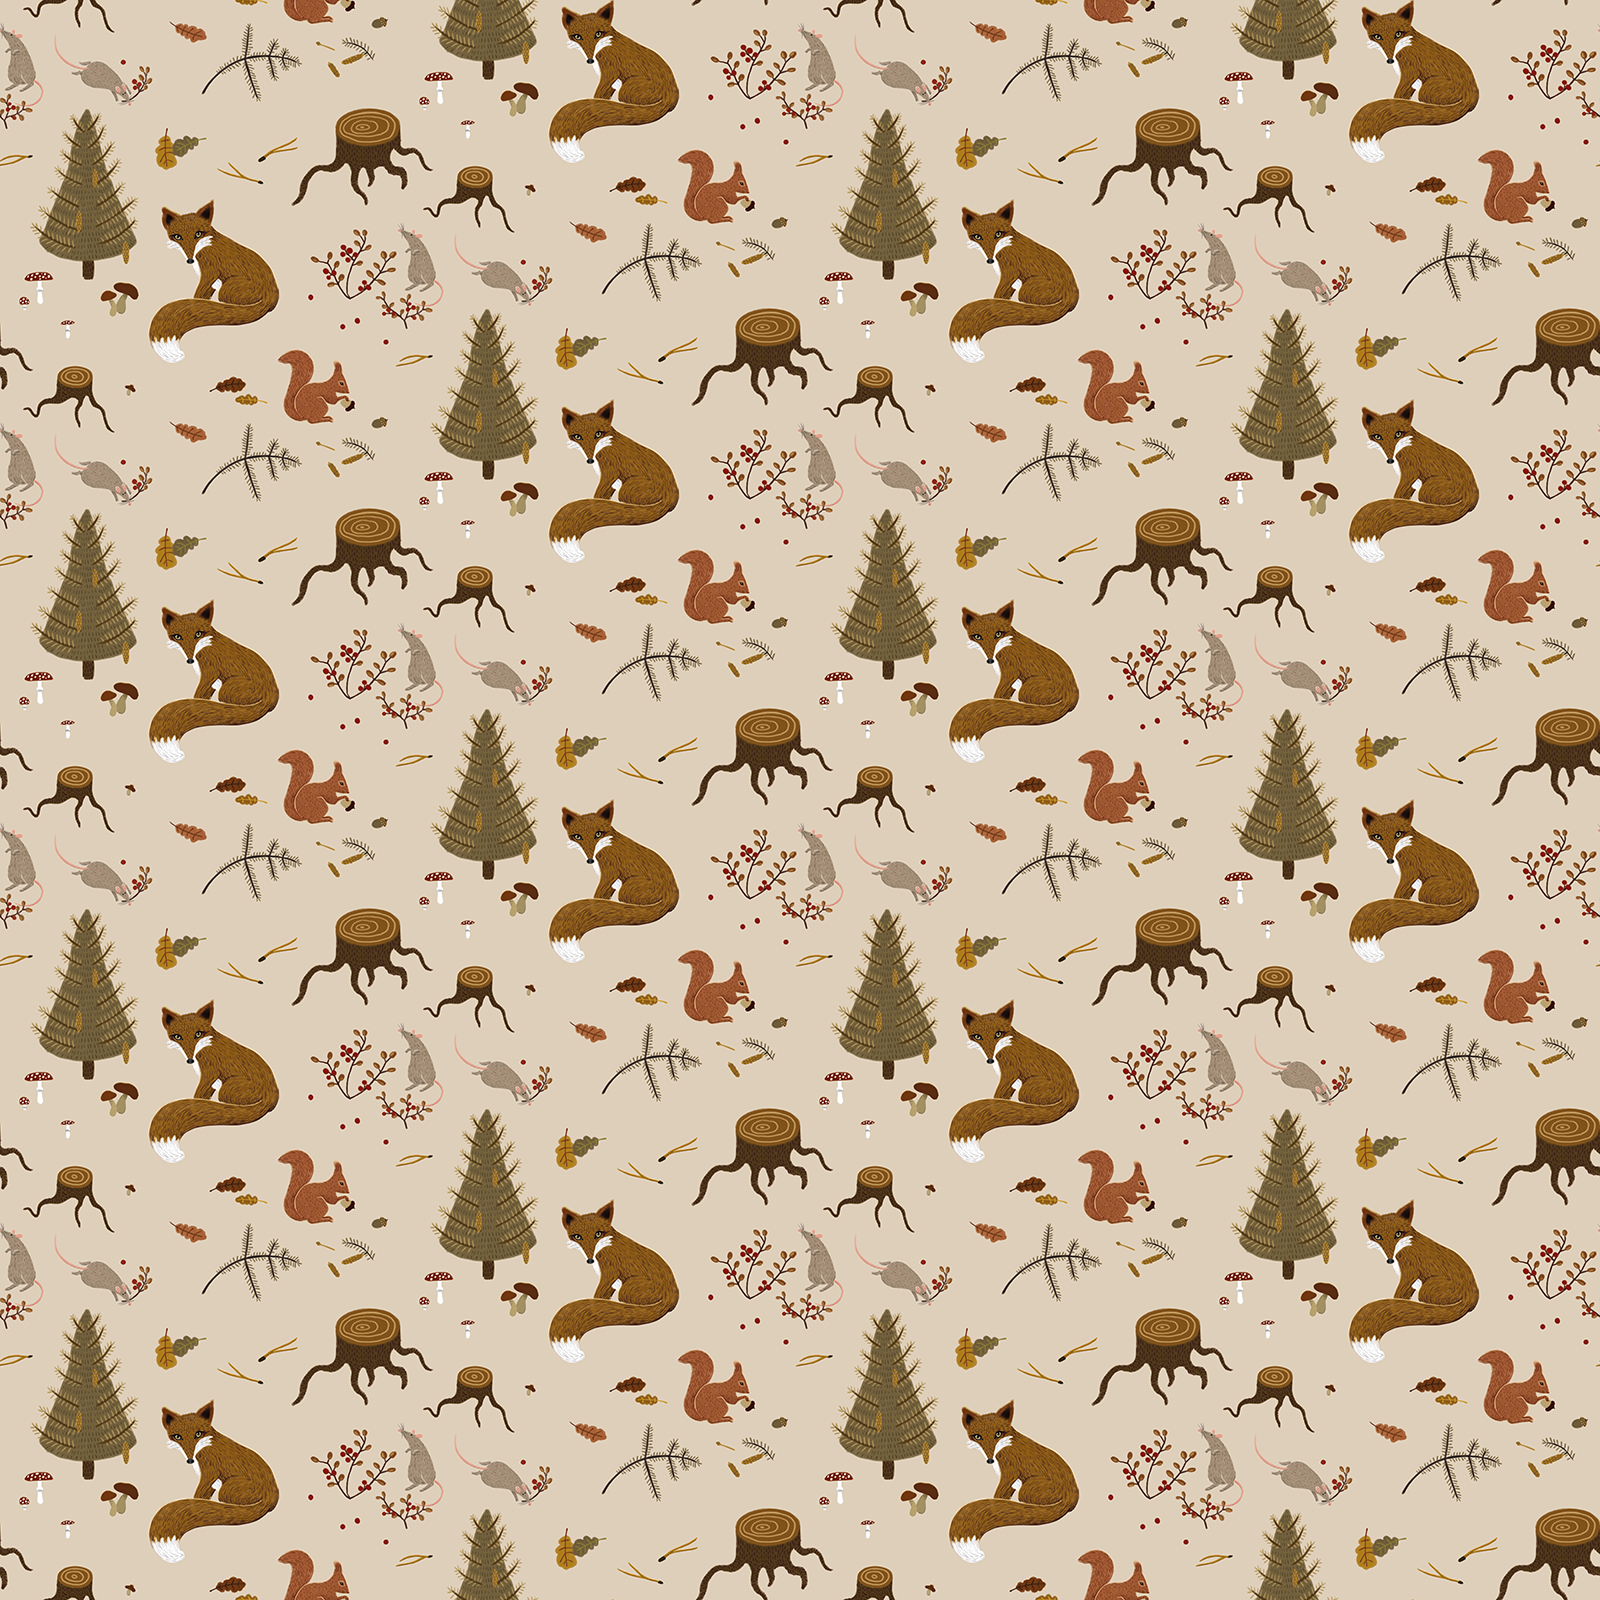 Fall_forest_pattern_2